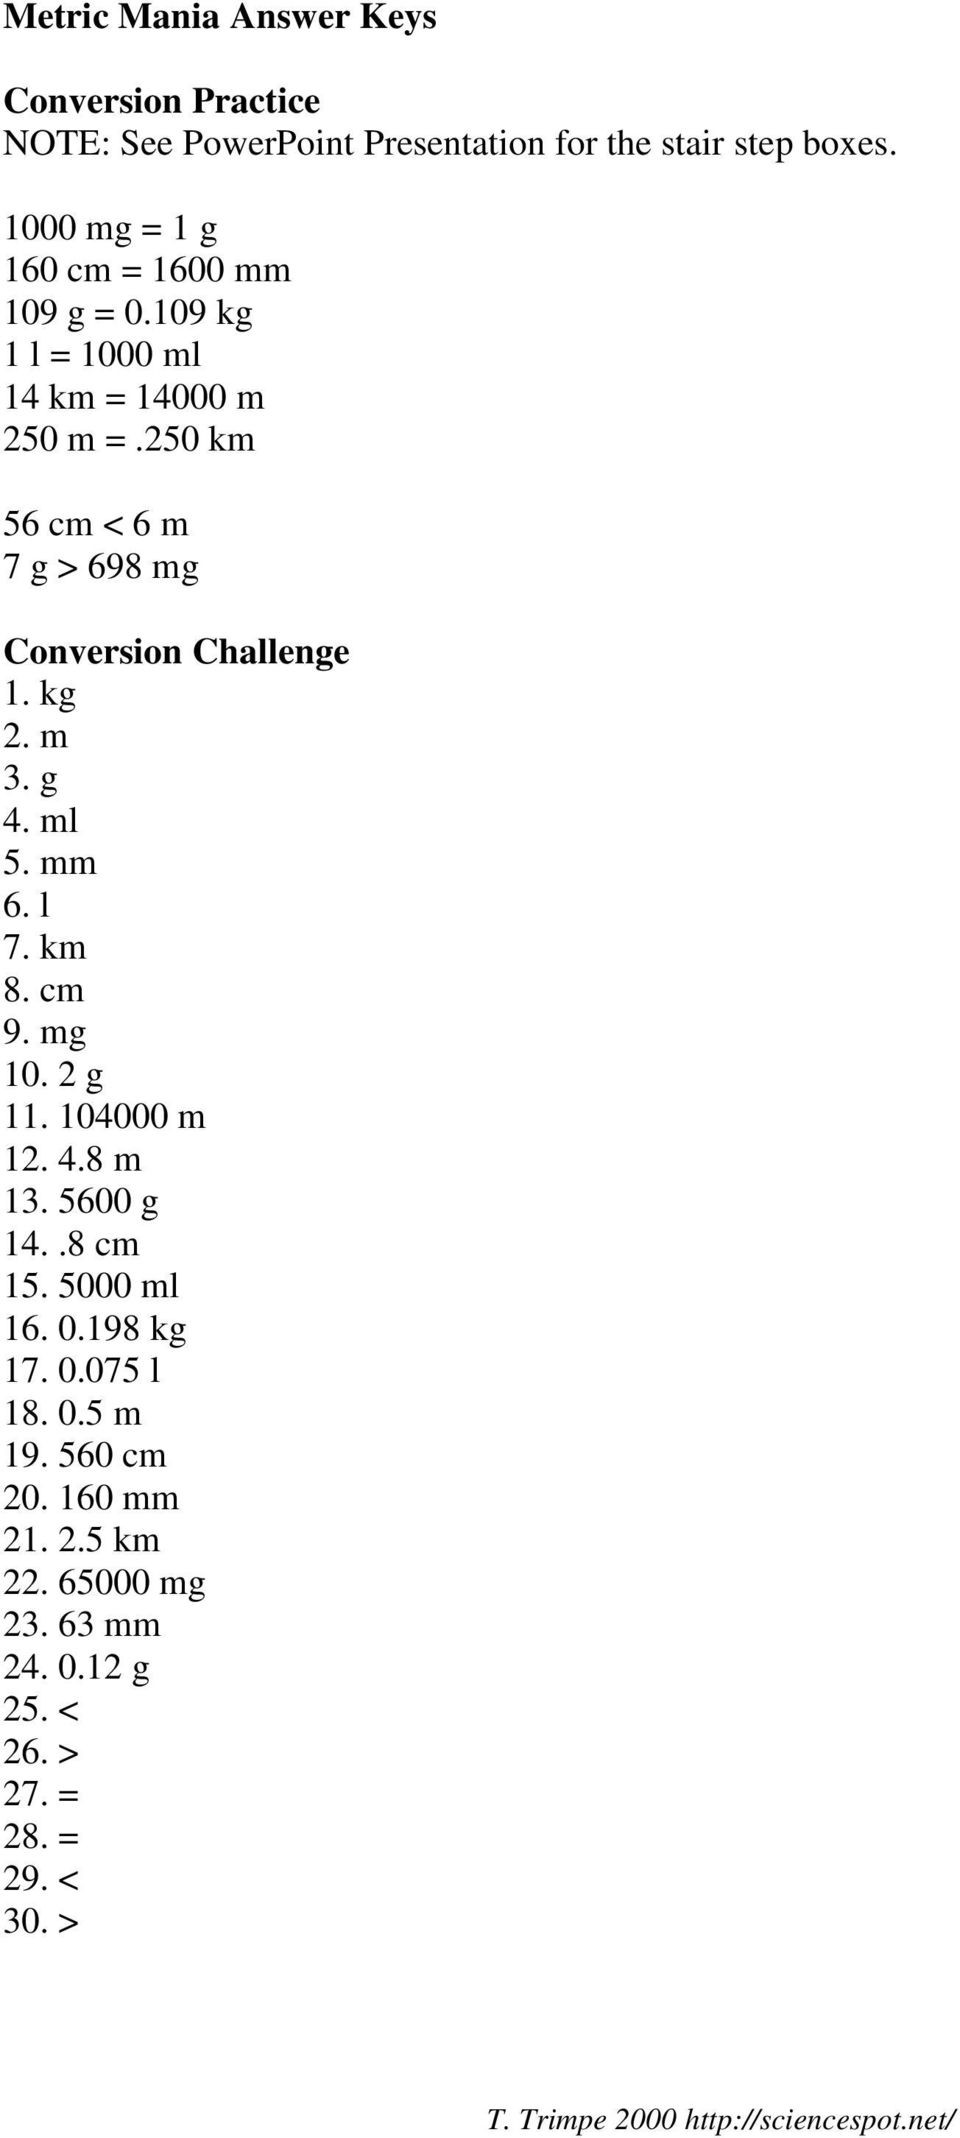 Metric Mania Worksheet Answers Unit Conversions Practice Pdf Free Download